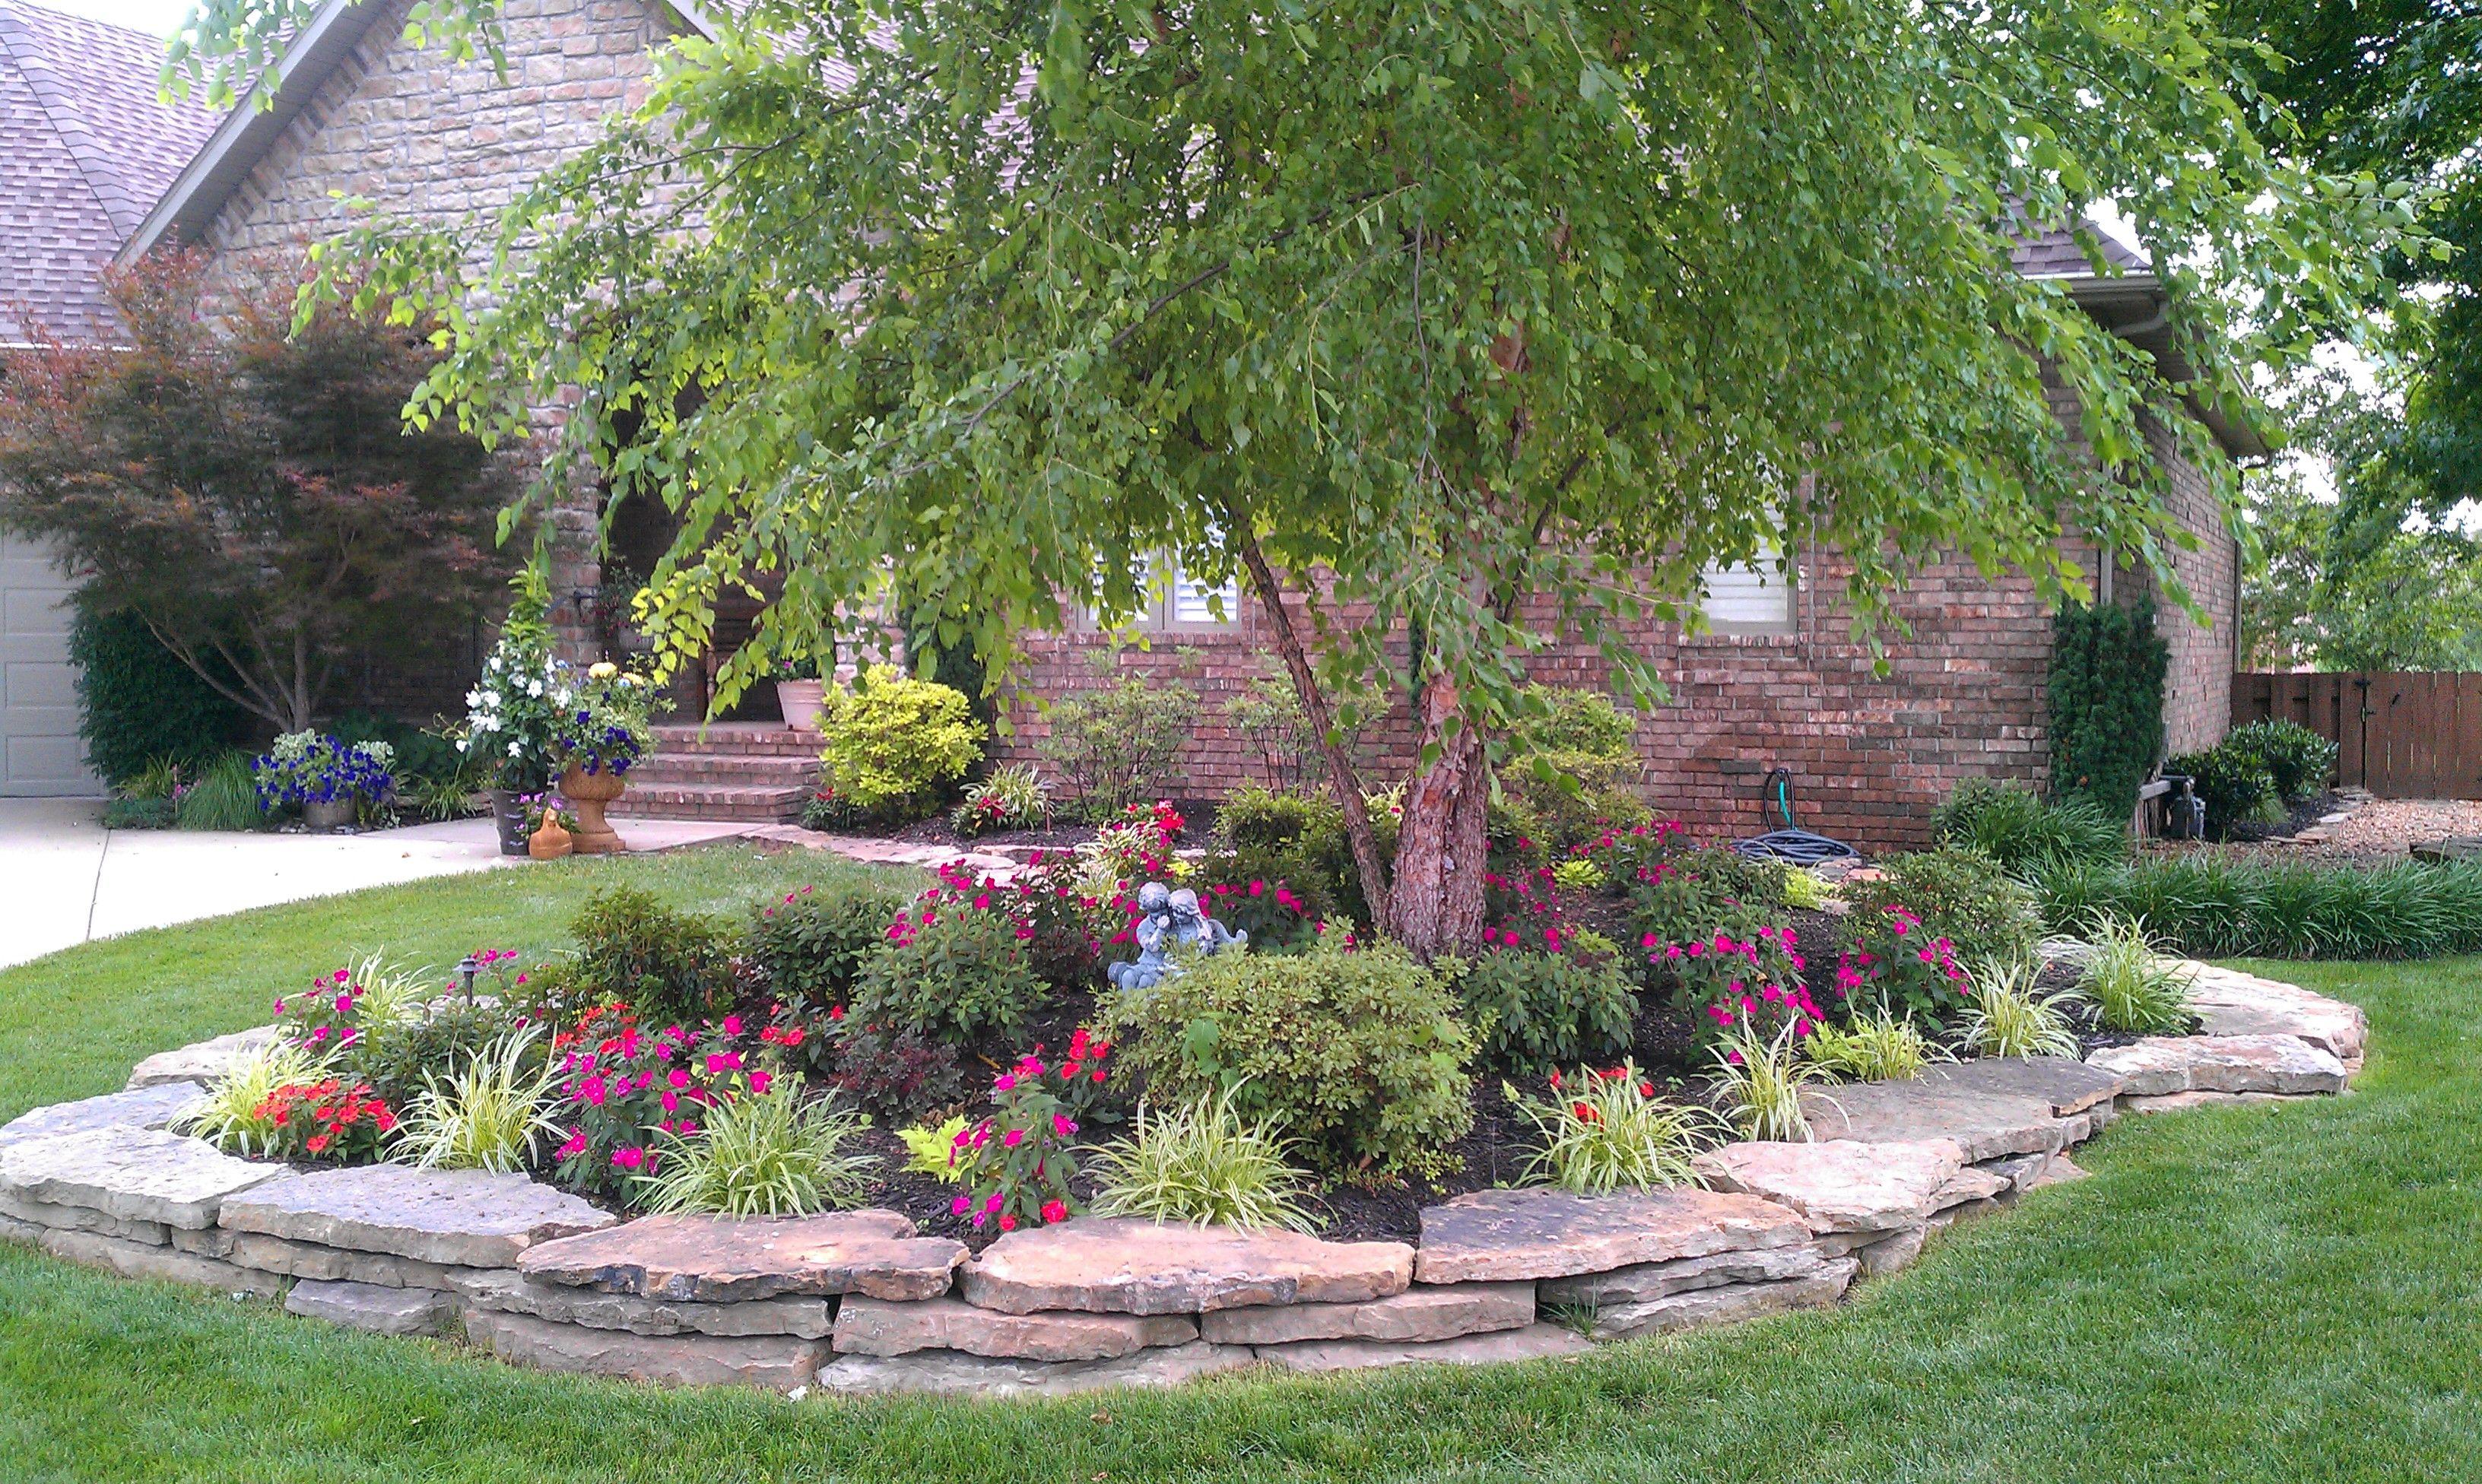 charming home and garden landscape design #2 - residential